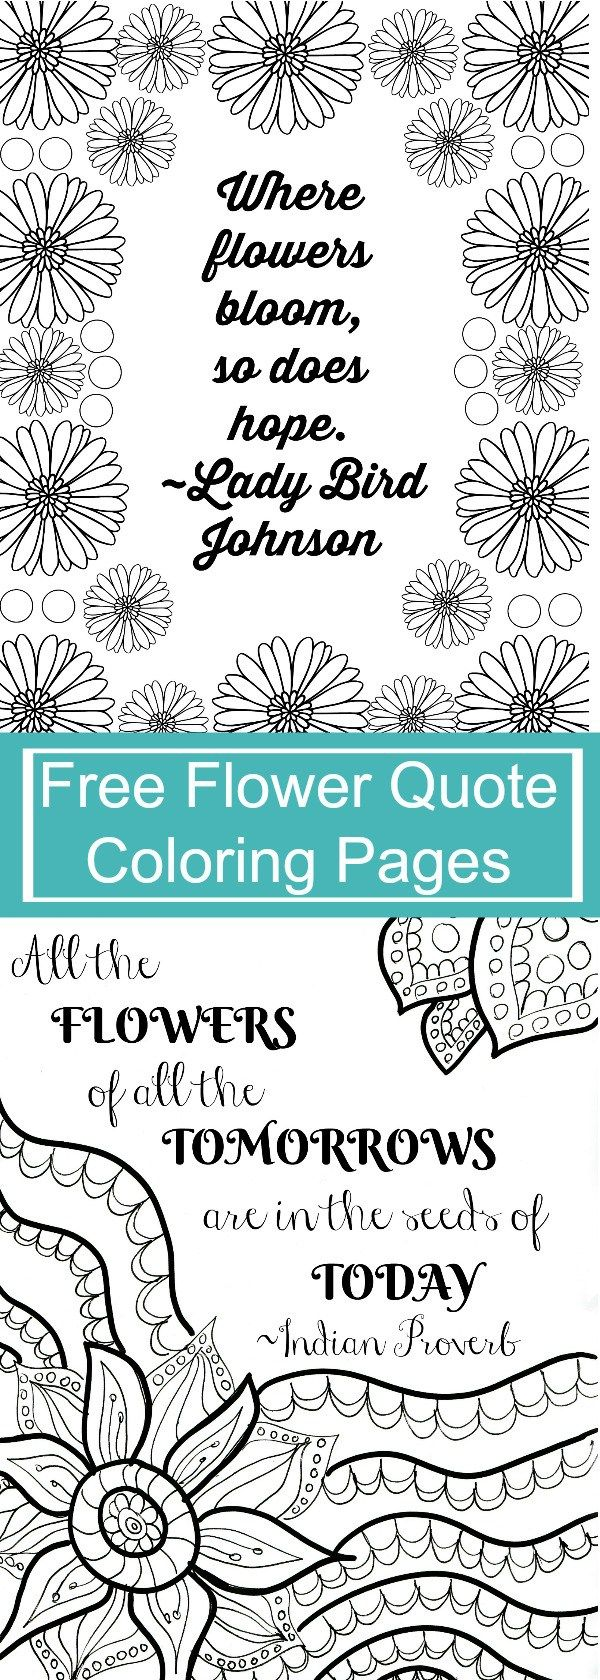 Free printable inspirational quotes coloring pages - Free Printable Flower Quote Coloring Pages